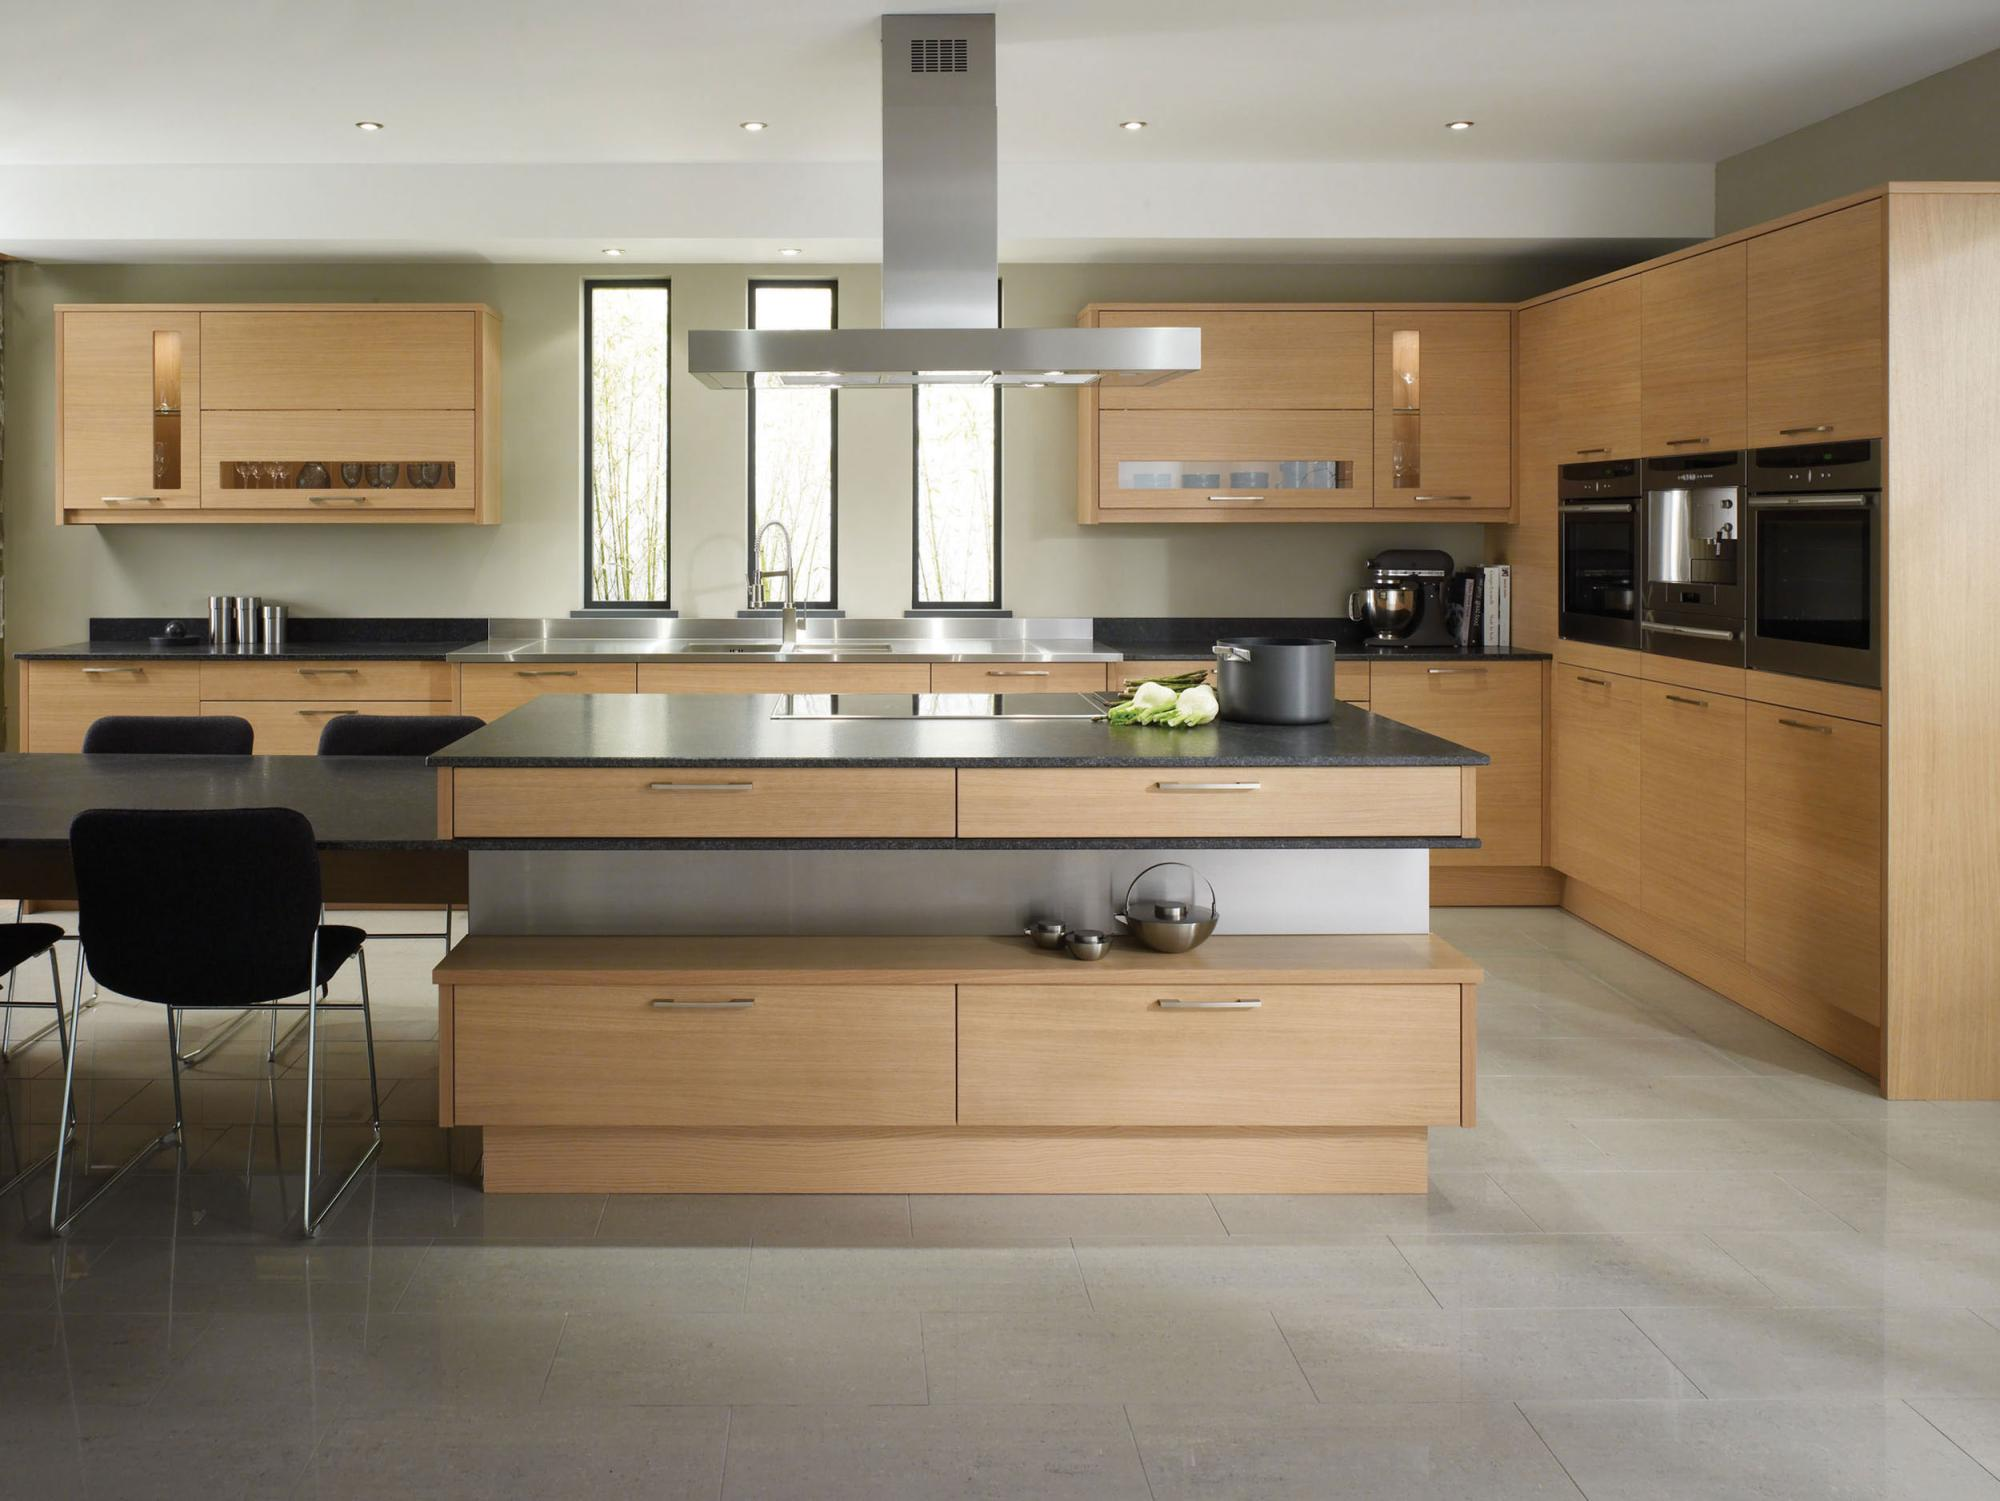 Modest-contemporary-kitchens-miami.jpg